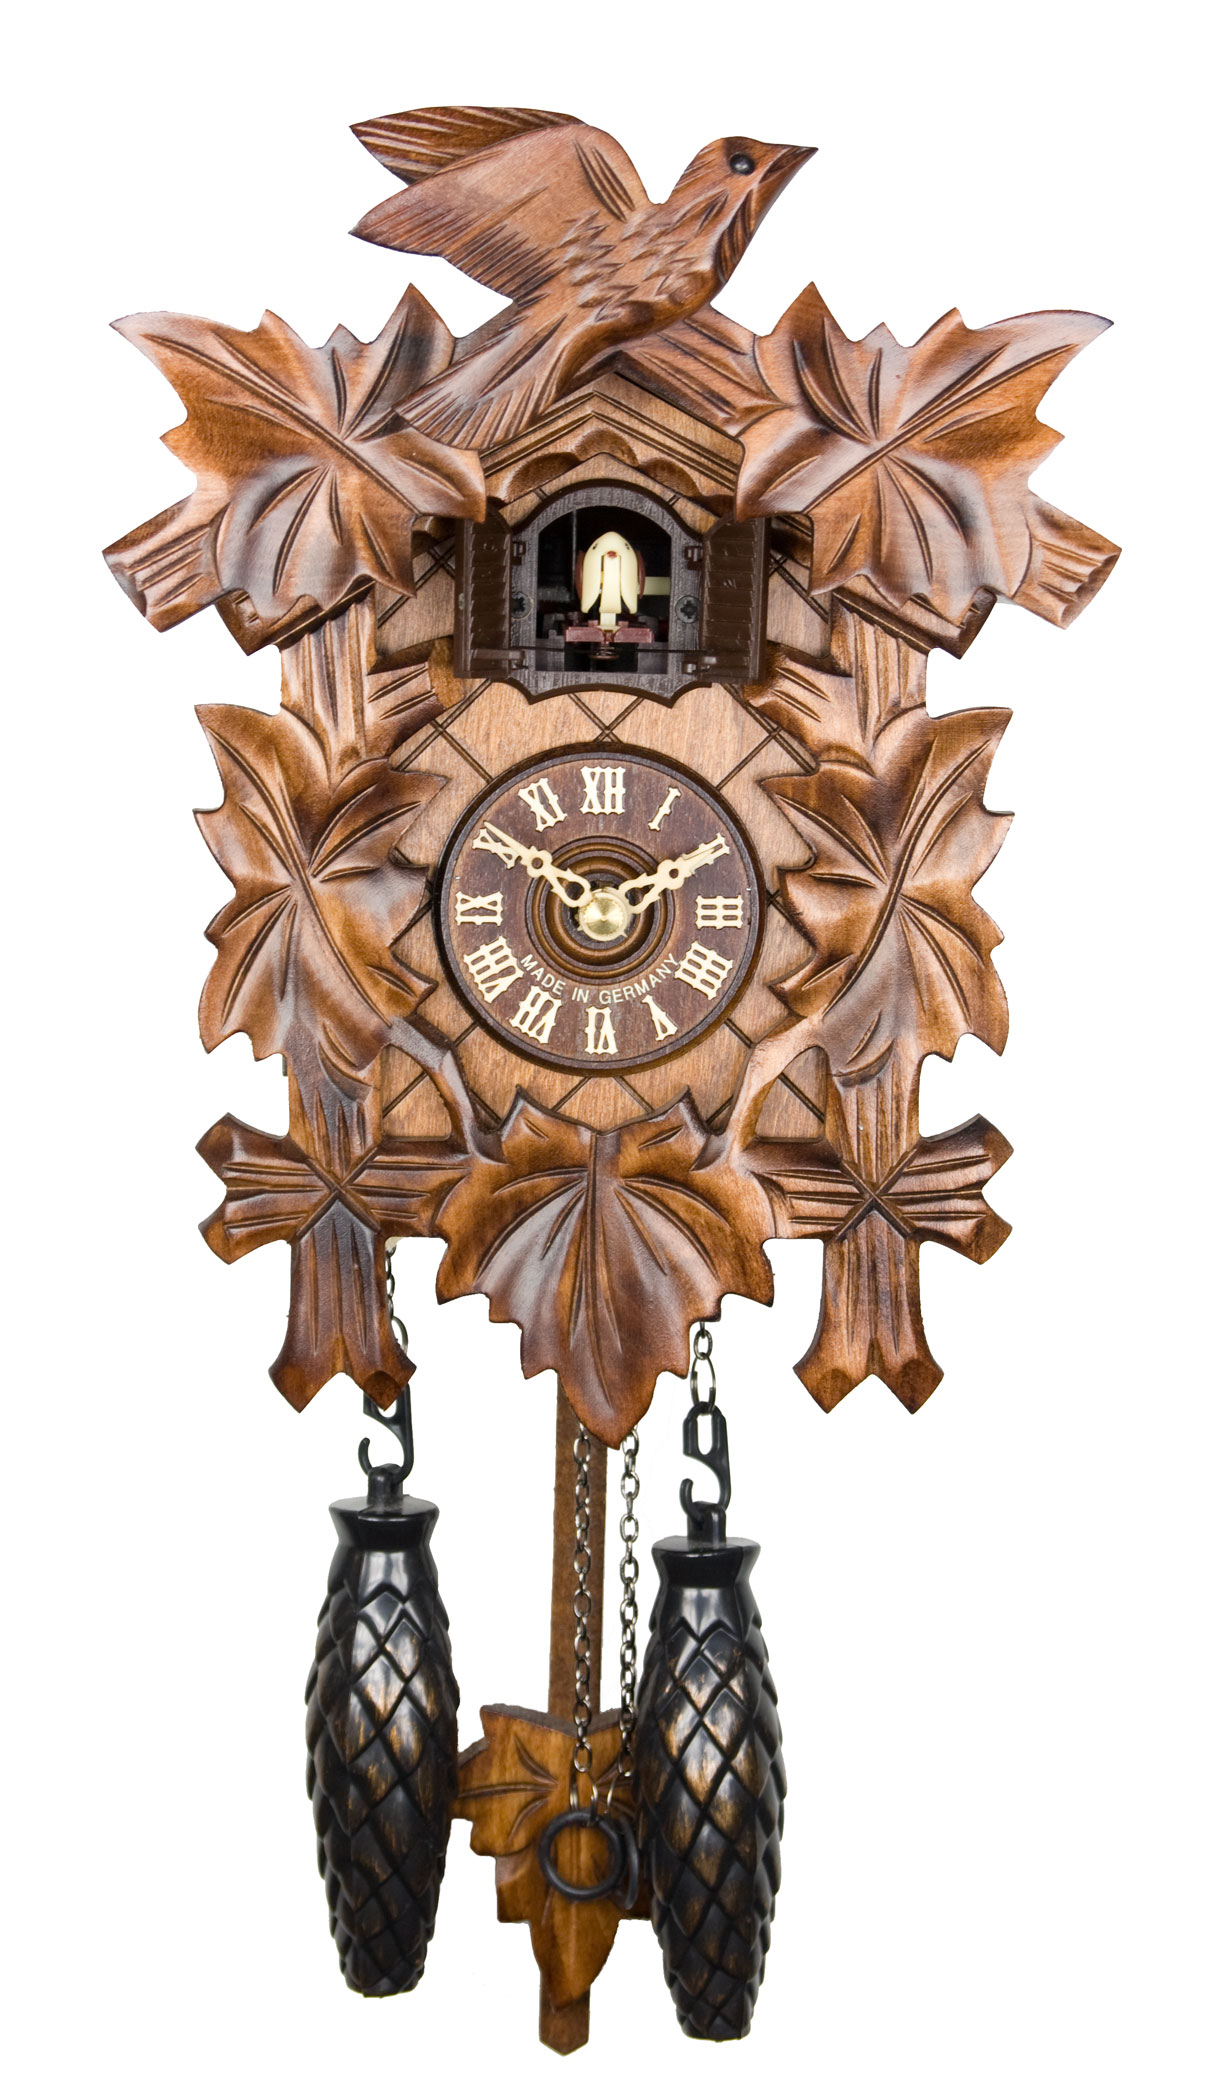 Adolf herr quartz cuckoo clock the traditional vine How to make a cuckoo clock